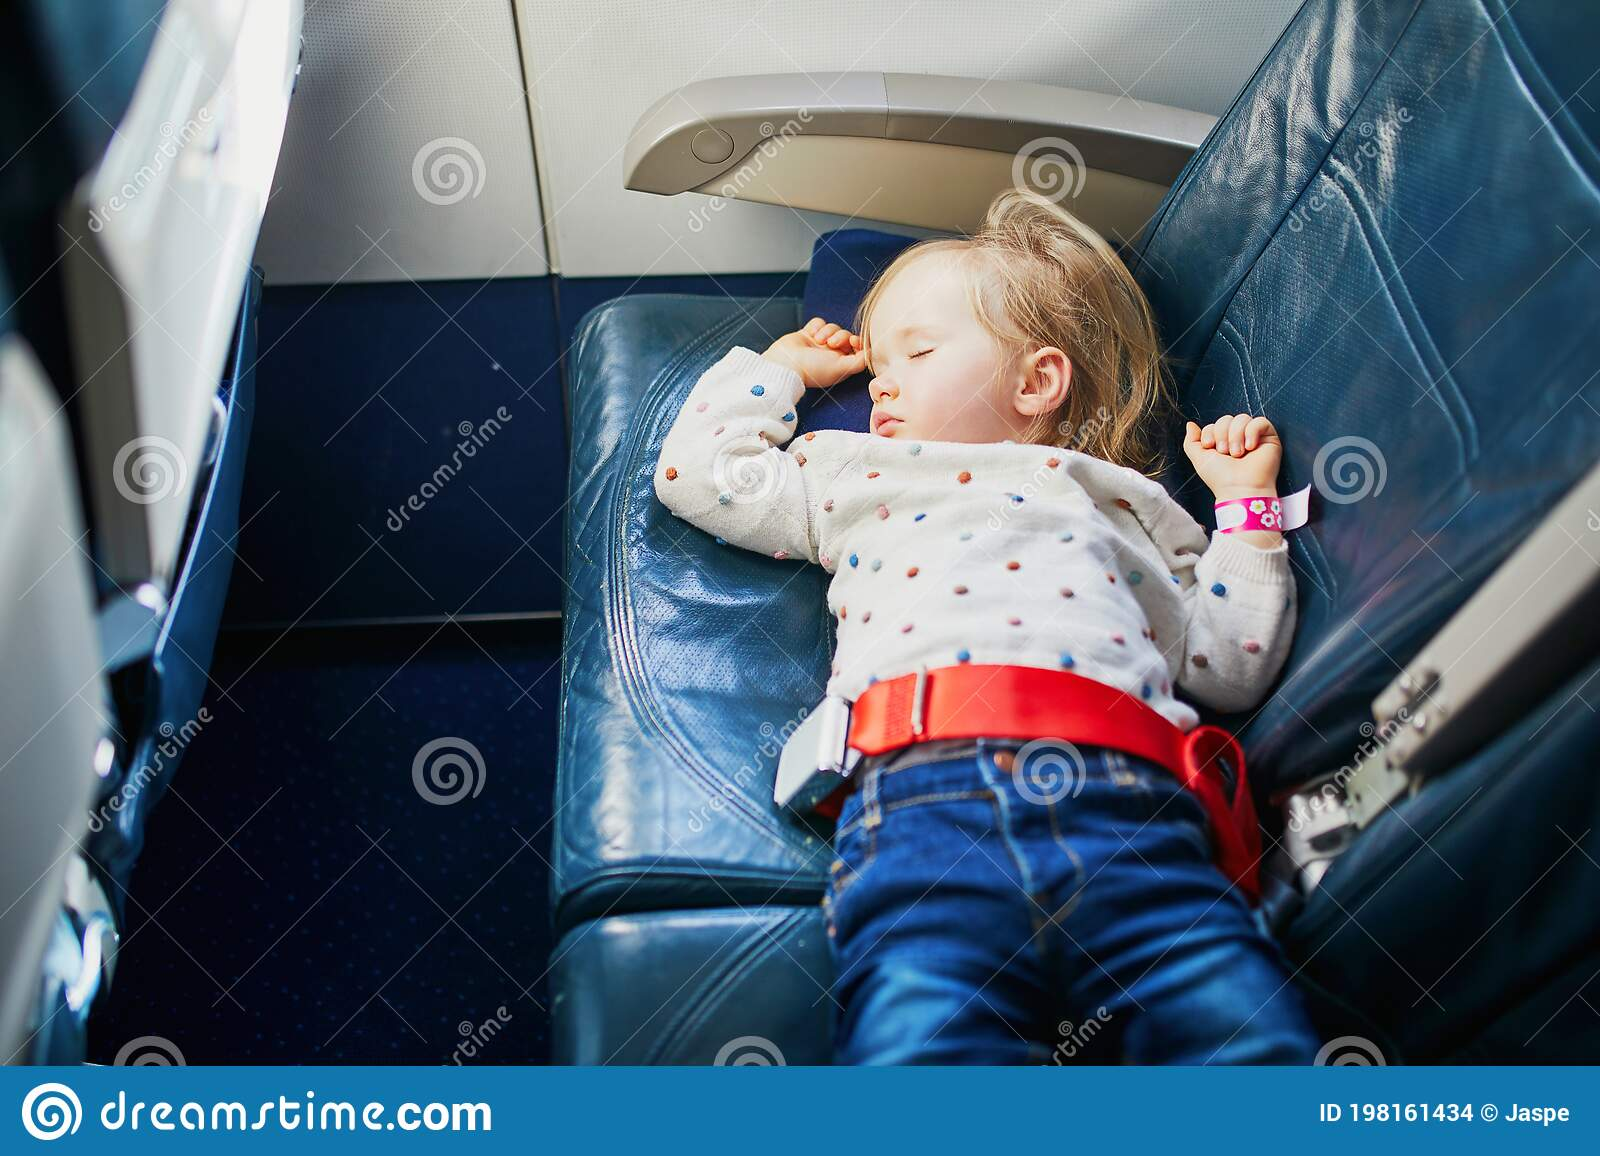 Adorable Little Toddler Girl Traveling By Plane Stock Photo Image Of Childhood Person 198161434